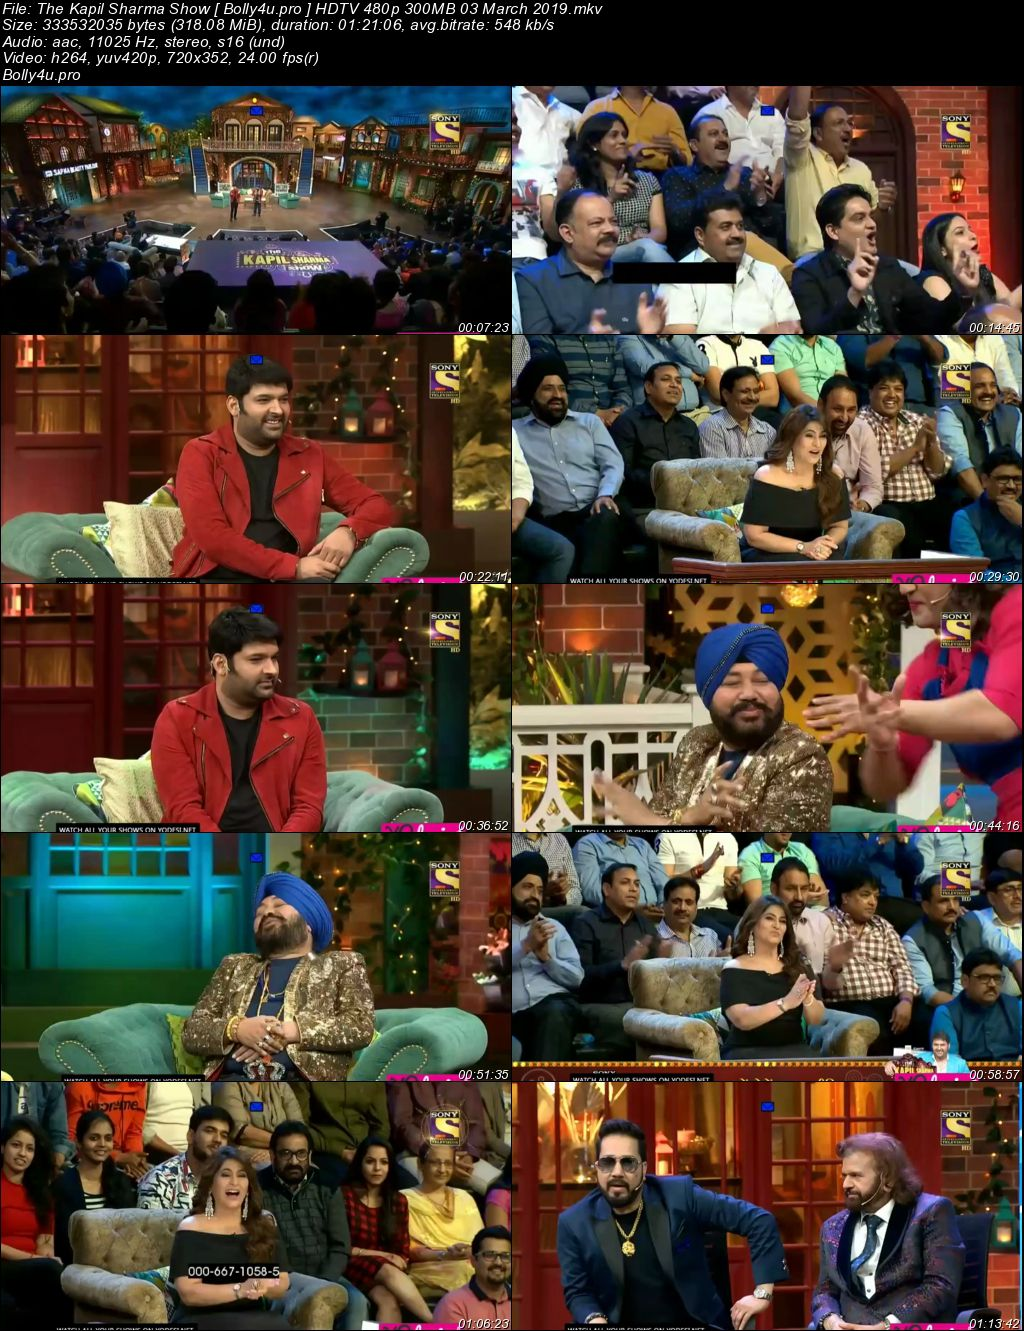 The Kapil Sharma Show HDTV 480p 300MB 03 March 2019 Download